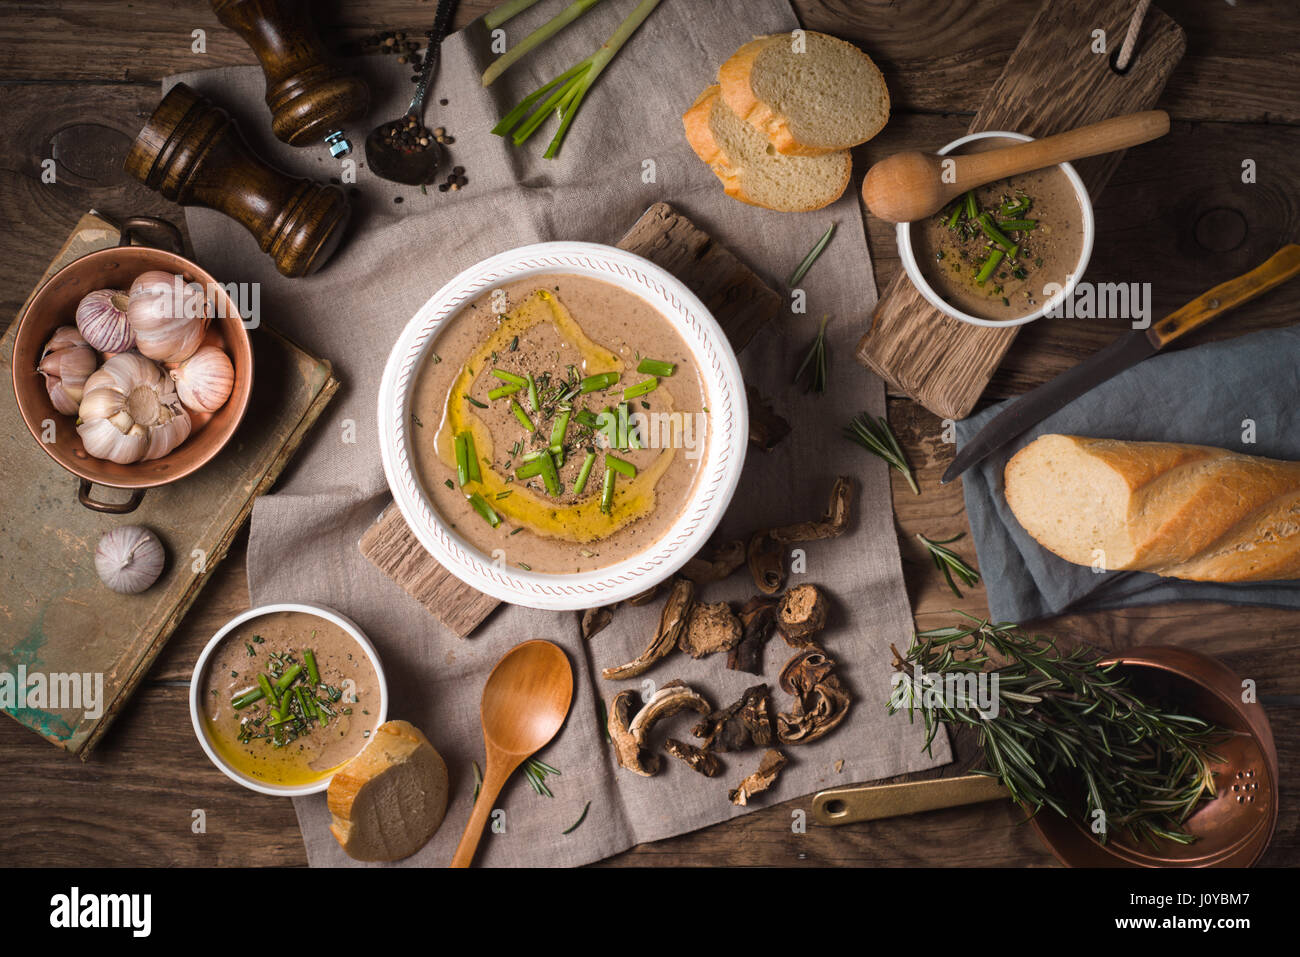 Mushroom soup puree in ceramic bowls three servings - Stock Image